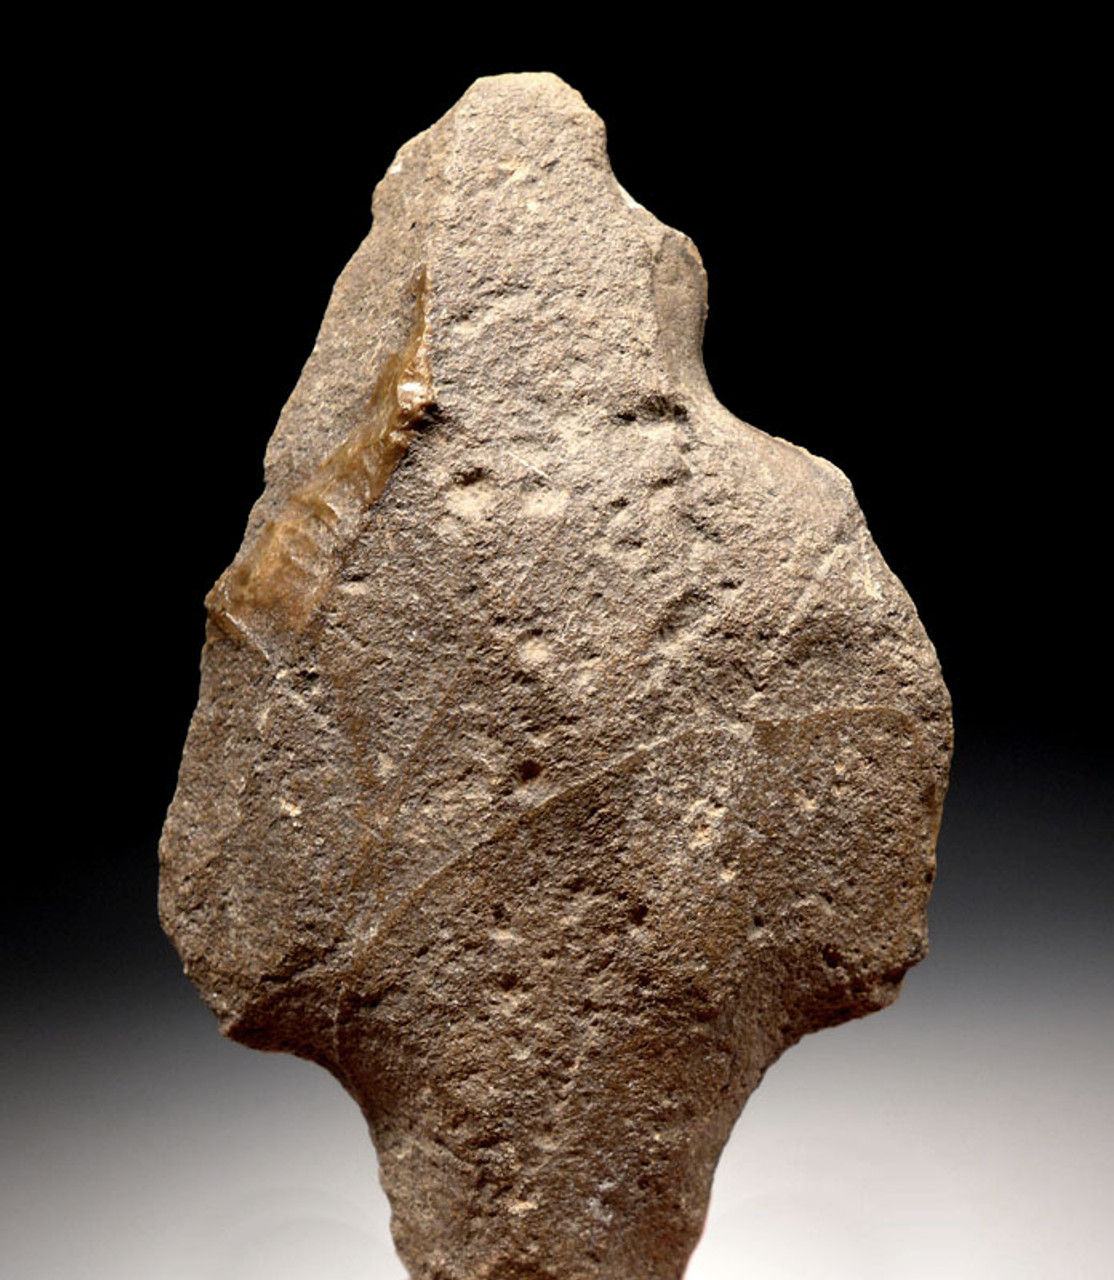 AT089 - LARGE MIDDLE PALEOLITHIC ATERIAN TANGED POINT - OLDEST TYPE ARROWHEAD